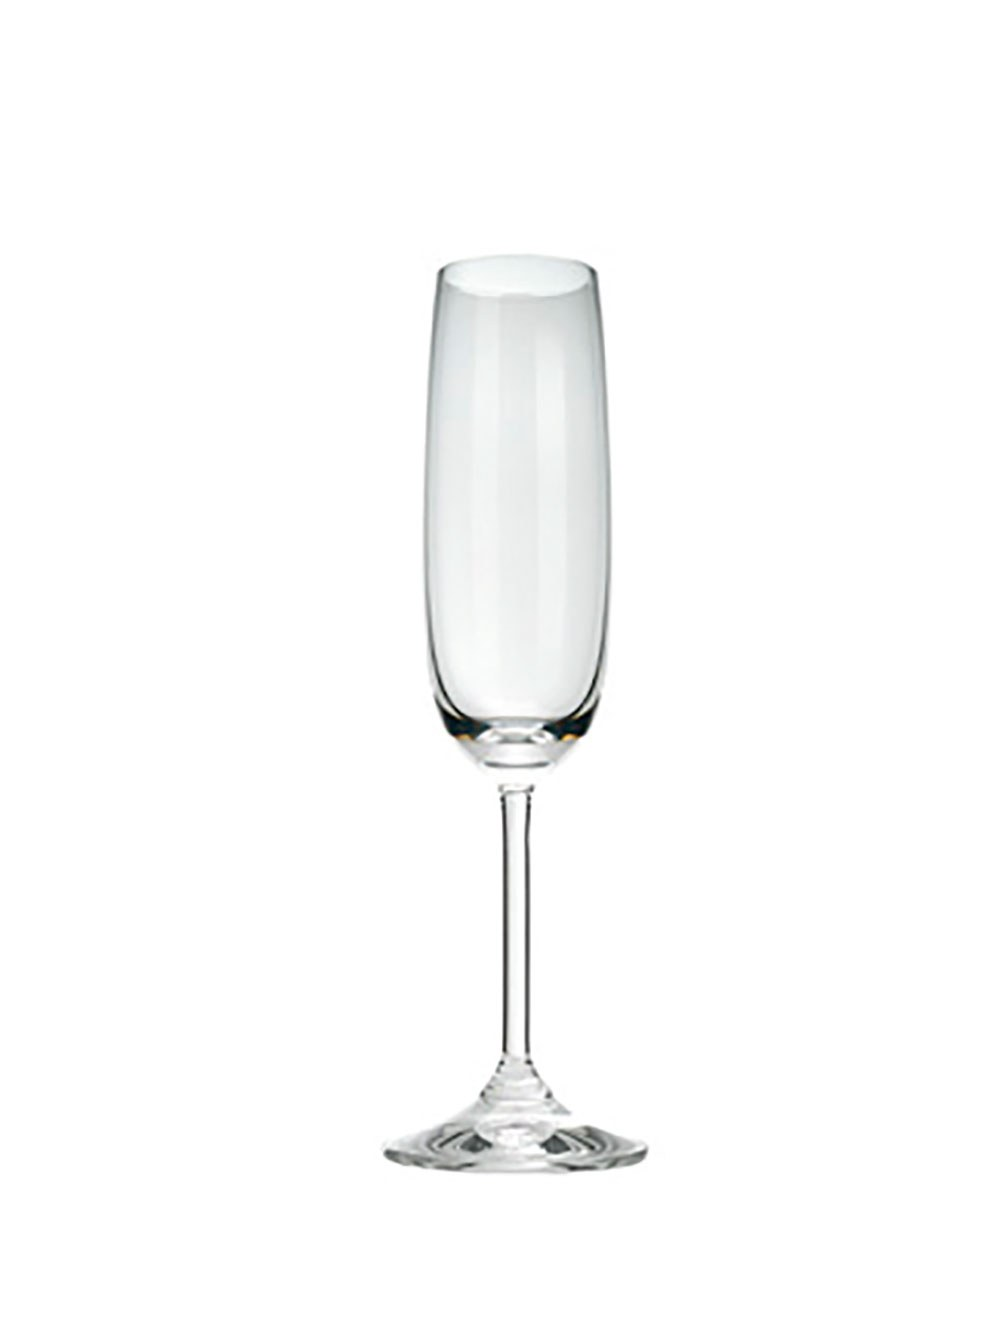 marquis by waterford vintage champagne flute set of 4 - Waterford Champagne Flutes